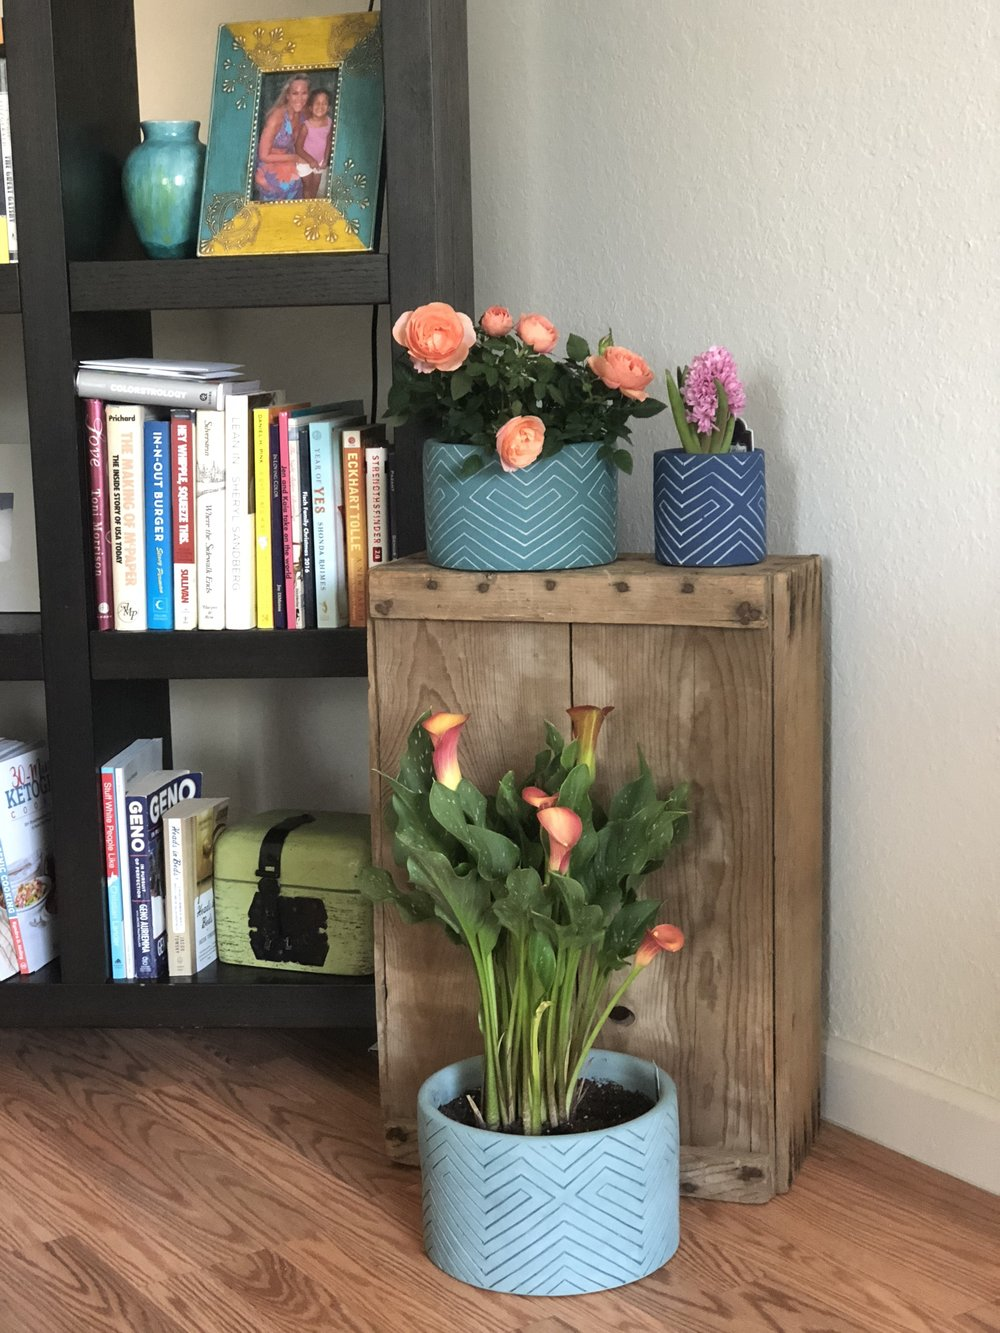 Pots from Target's OpalHouse line, plants from Trader Joe's